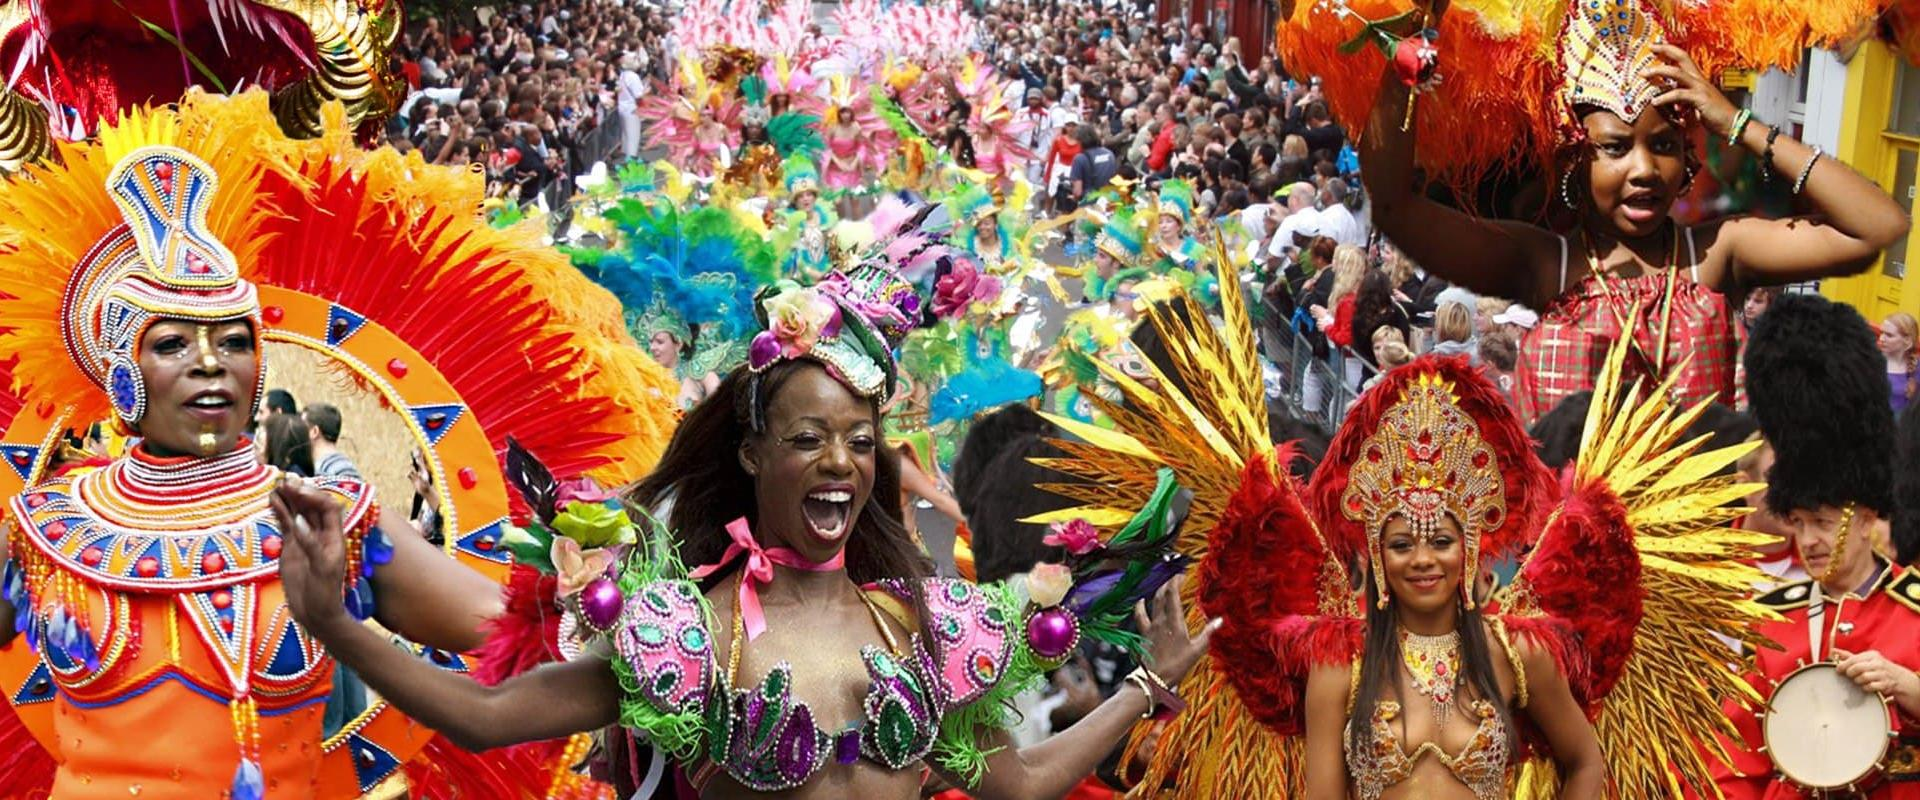 Festival Frolicks: Notting Hill Carnival | Art, Culture, Cocktails and  Lifestyle | Perrier Magazine